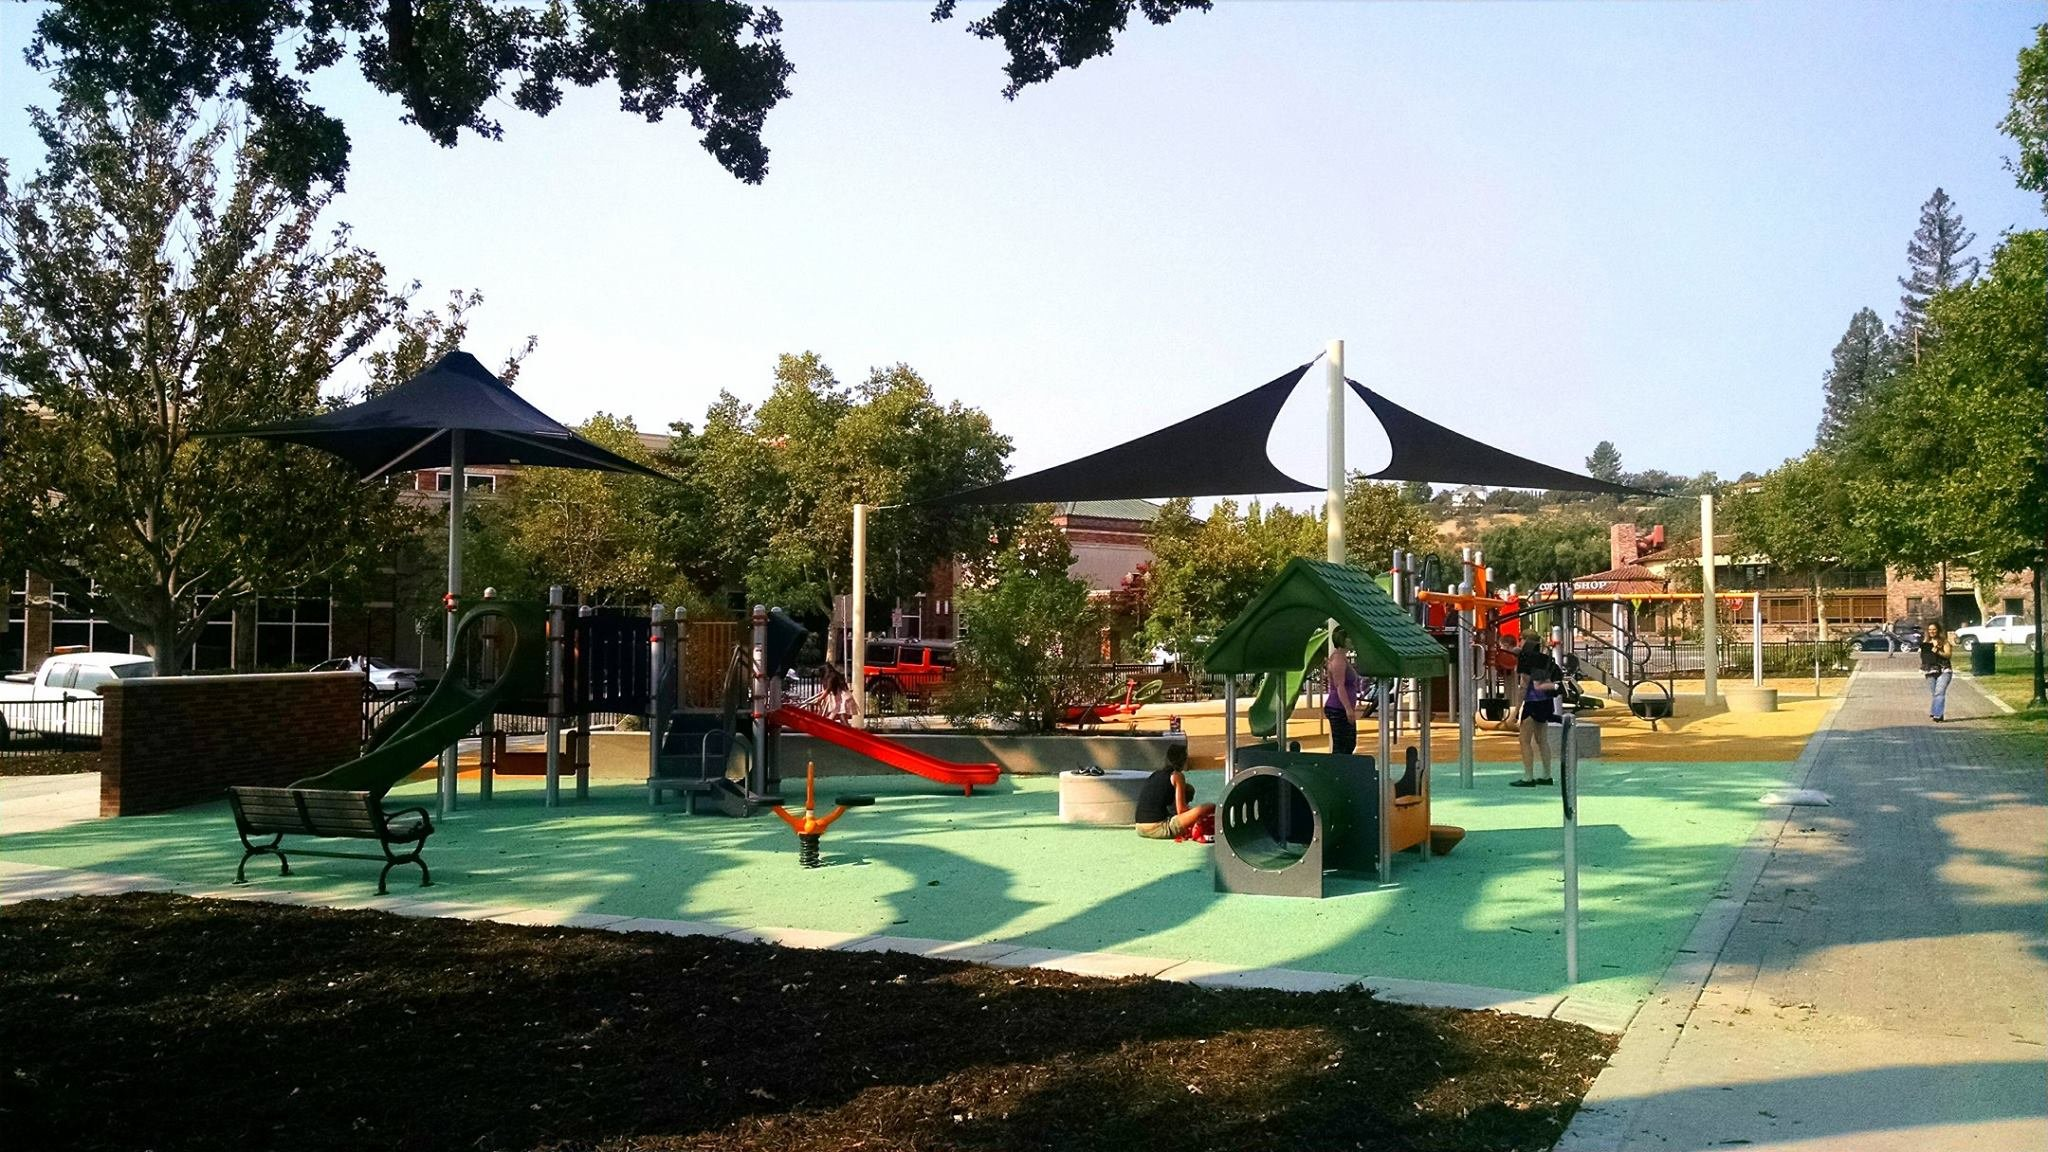 The playground, located in the downtown park across from the library, opened for use July 29. (Paso Robles Chamber of Commerce)